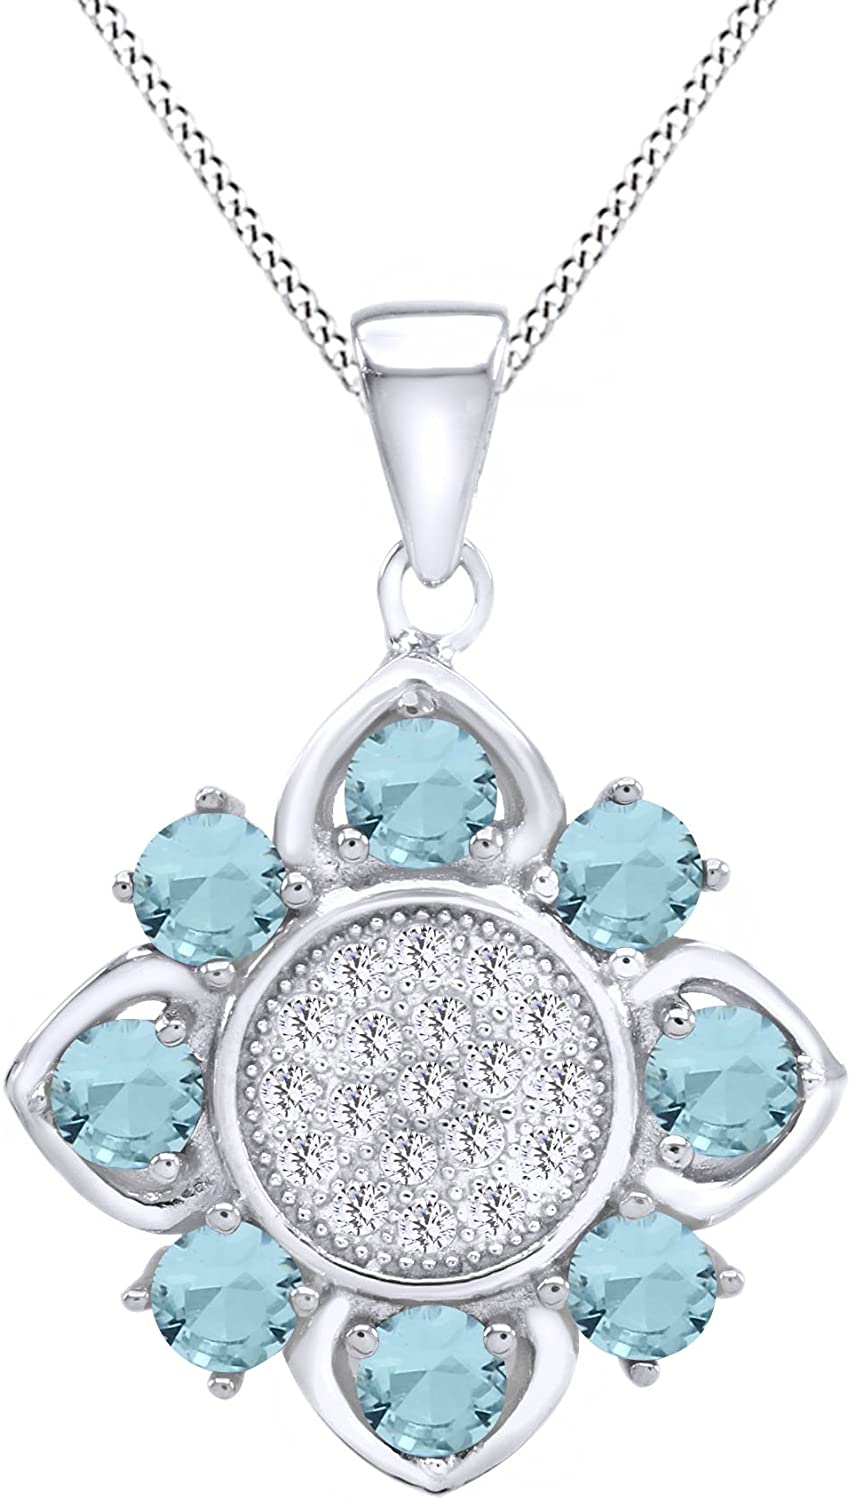 AFFY Art Deco Flower Cubic Zirconia Halo Cluster Style Pendant Necklace in 925 Sterling Silver